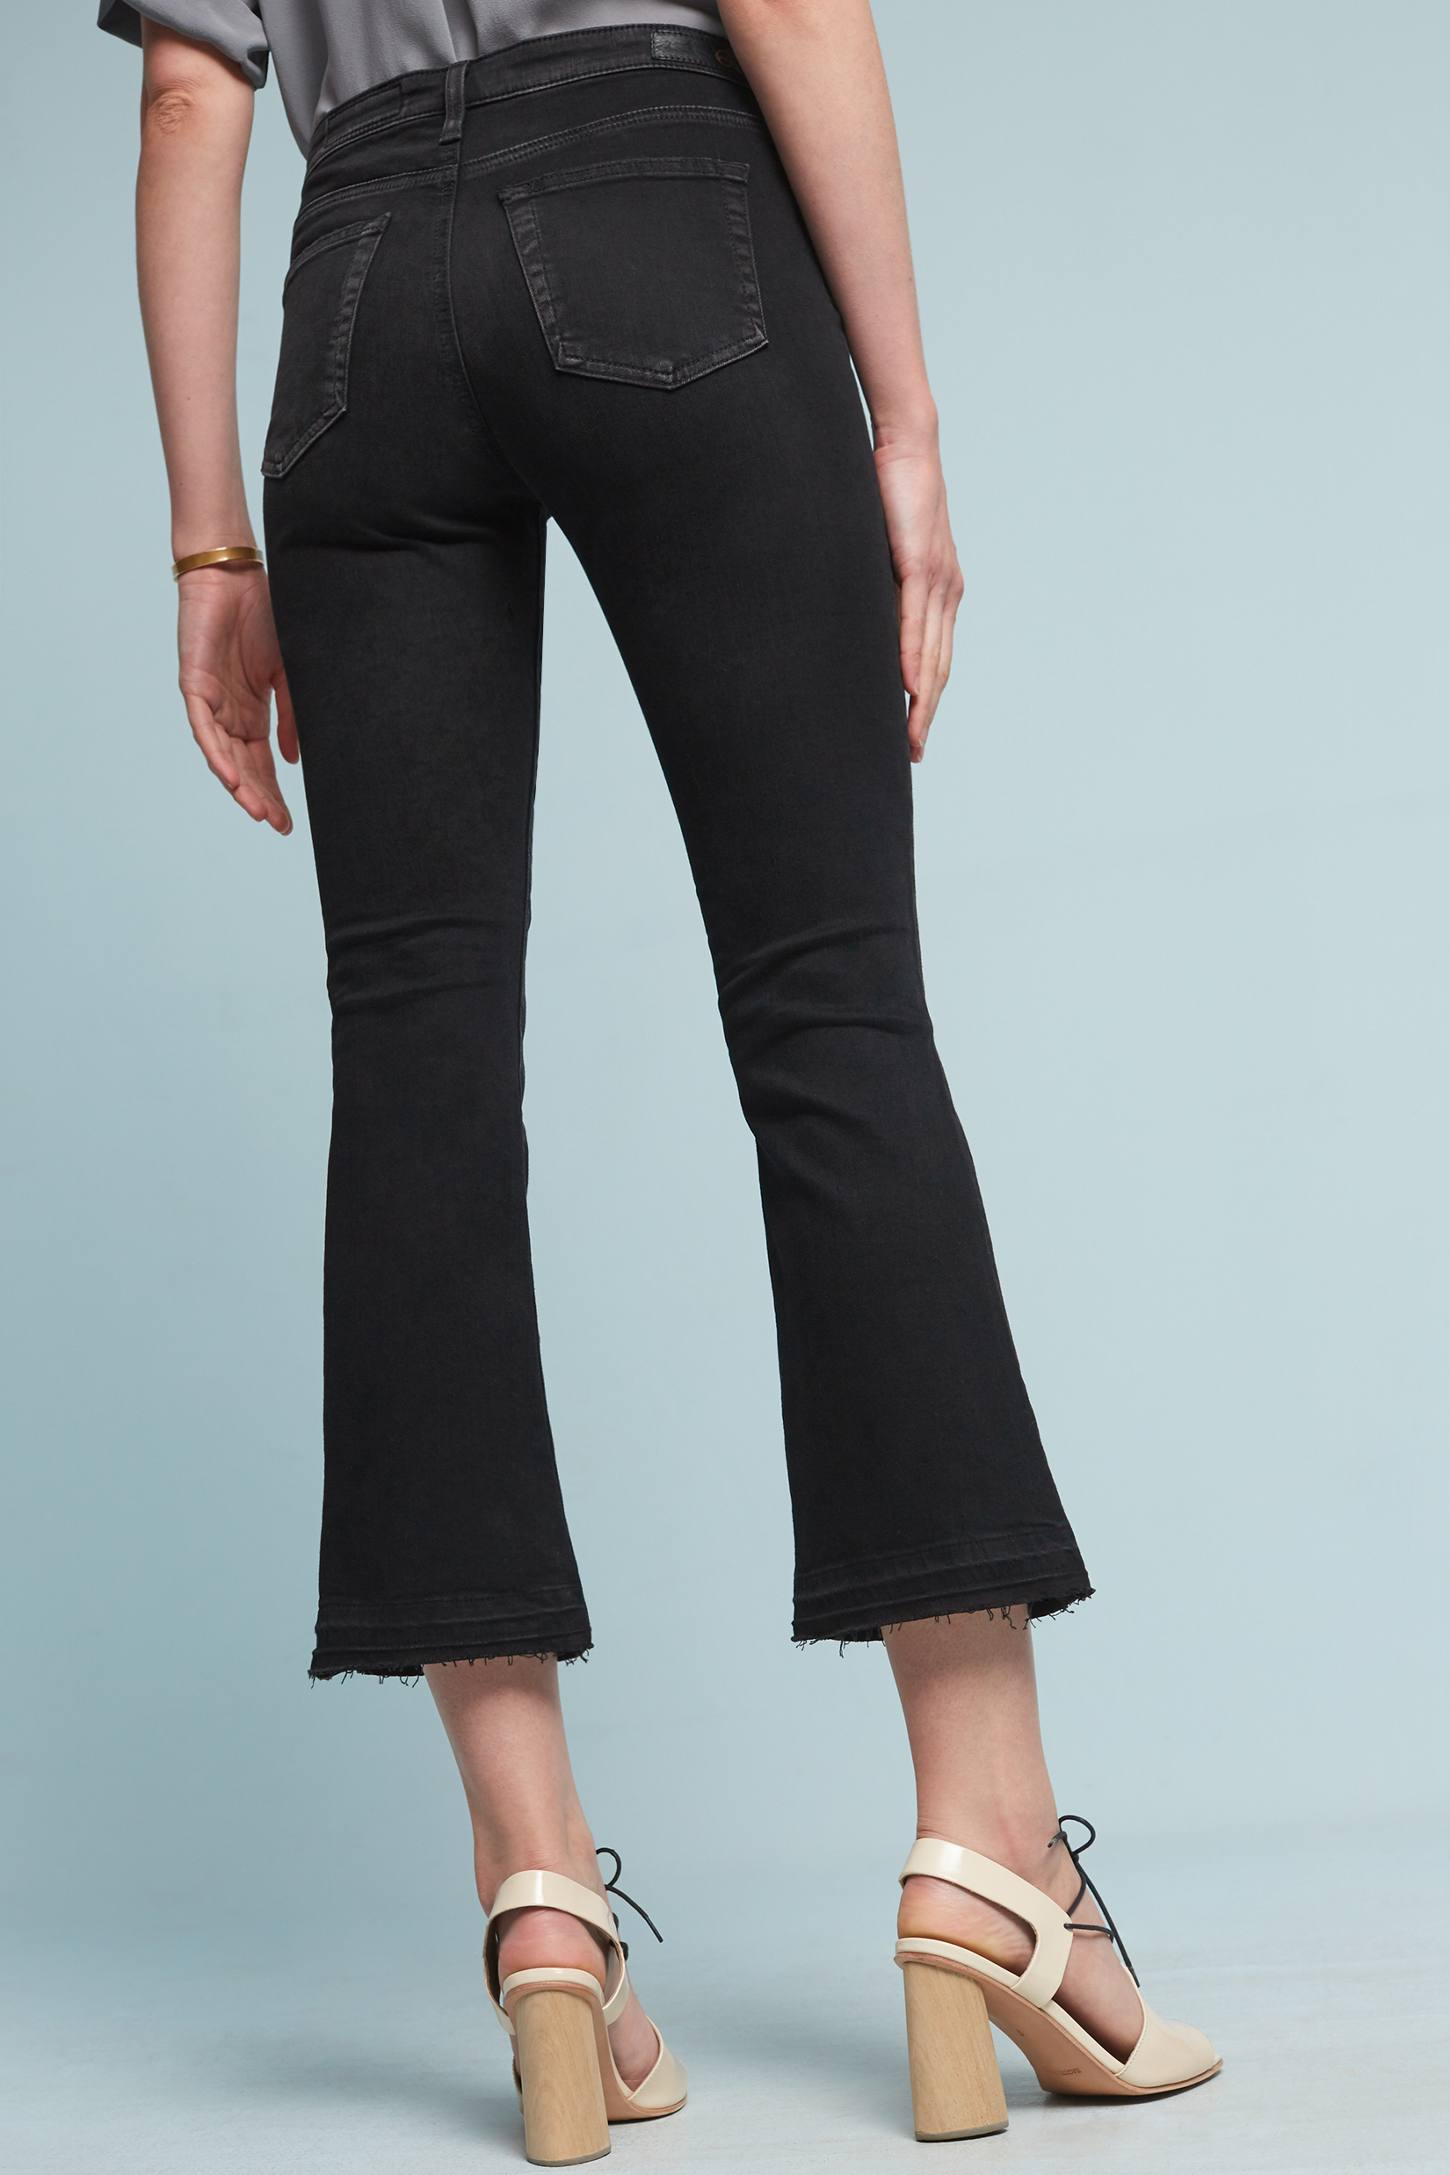 AG The Jodi High-Rise Cropped Flare Jeans | Anthropologie